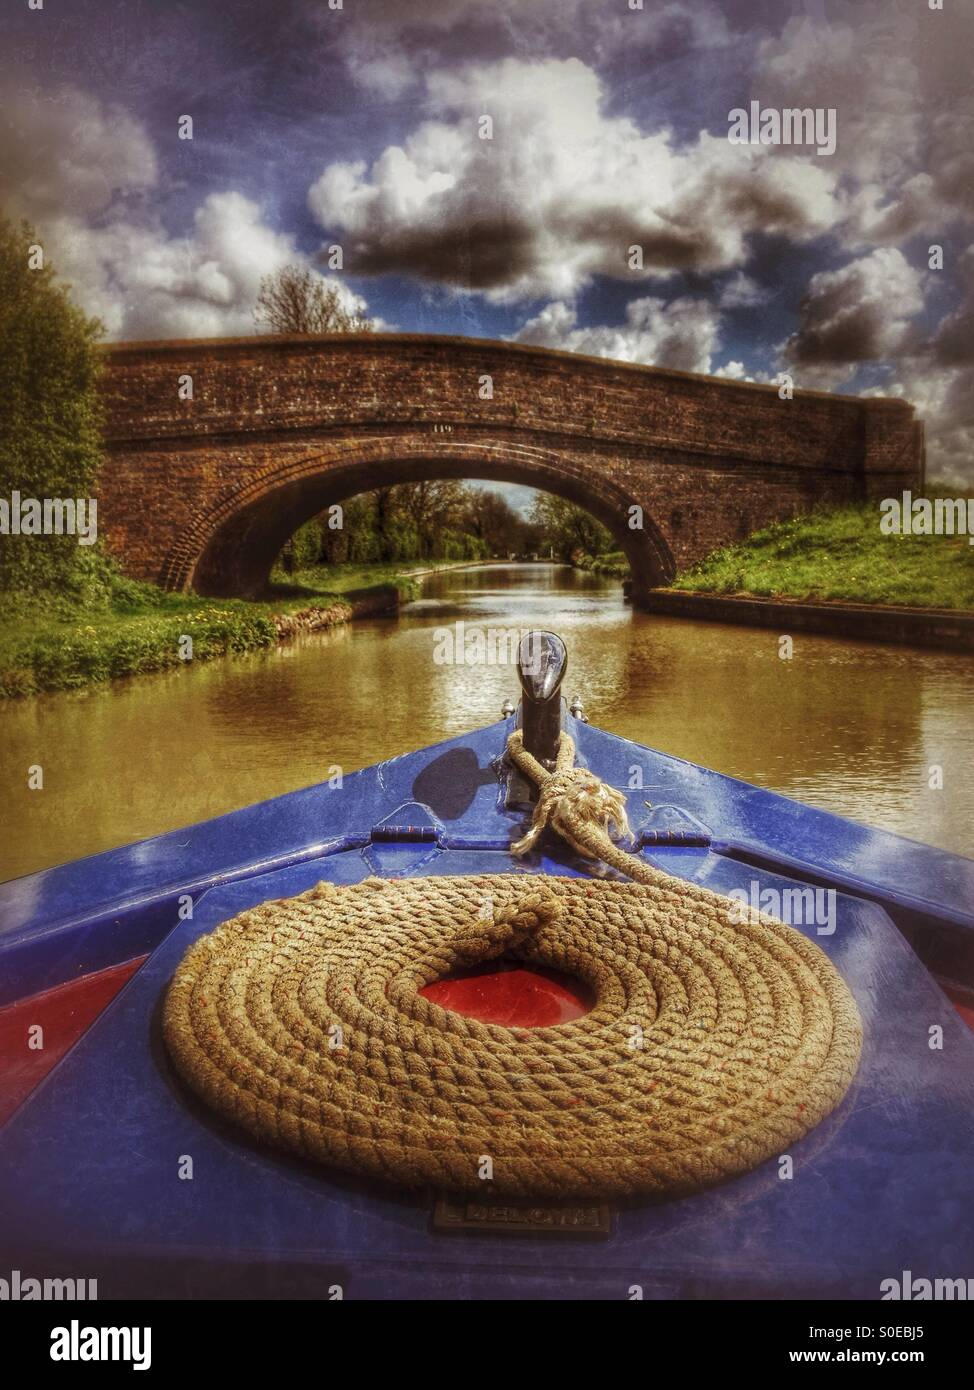 Narrowboat approaching a bridge over the South Oxford Canal near Cropredy, Oxfordshire, England. - Stock Image